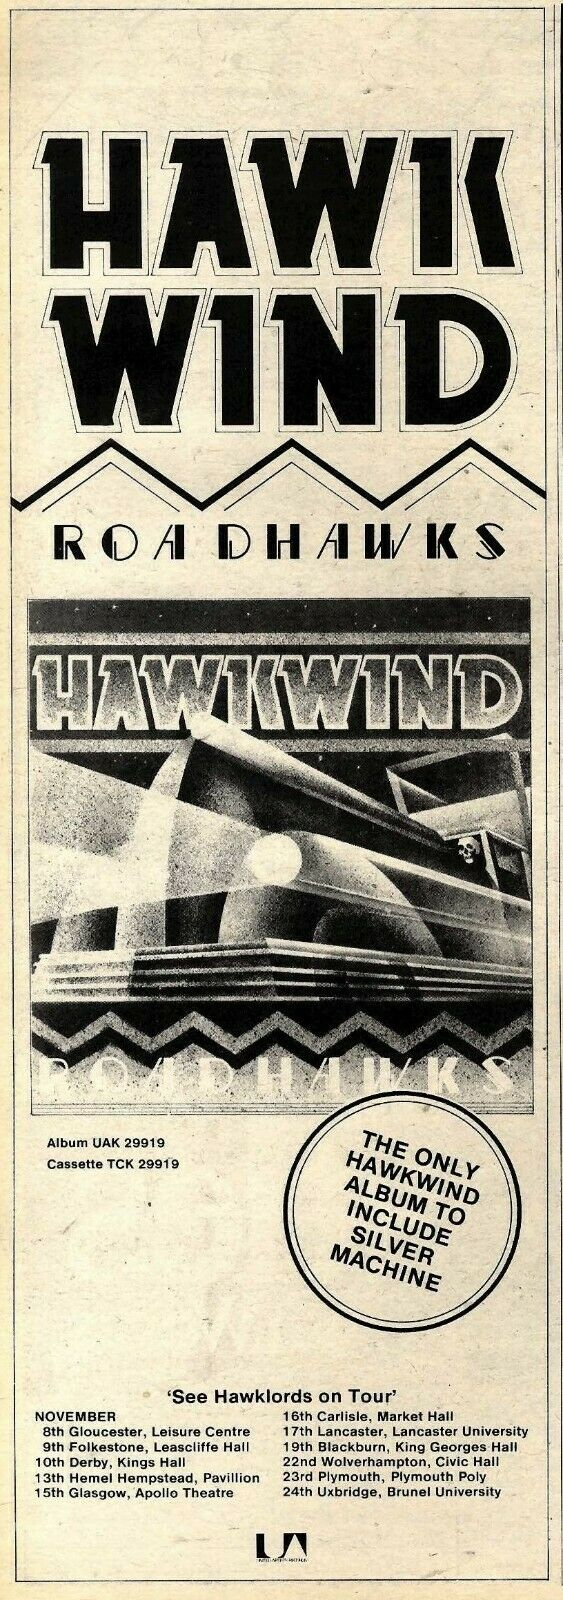 Roadhawks UK press ad v2